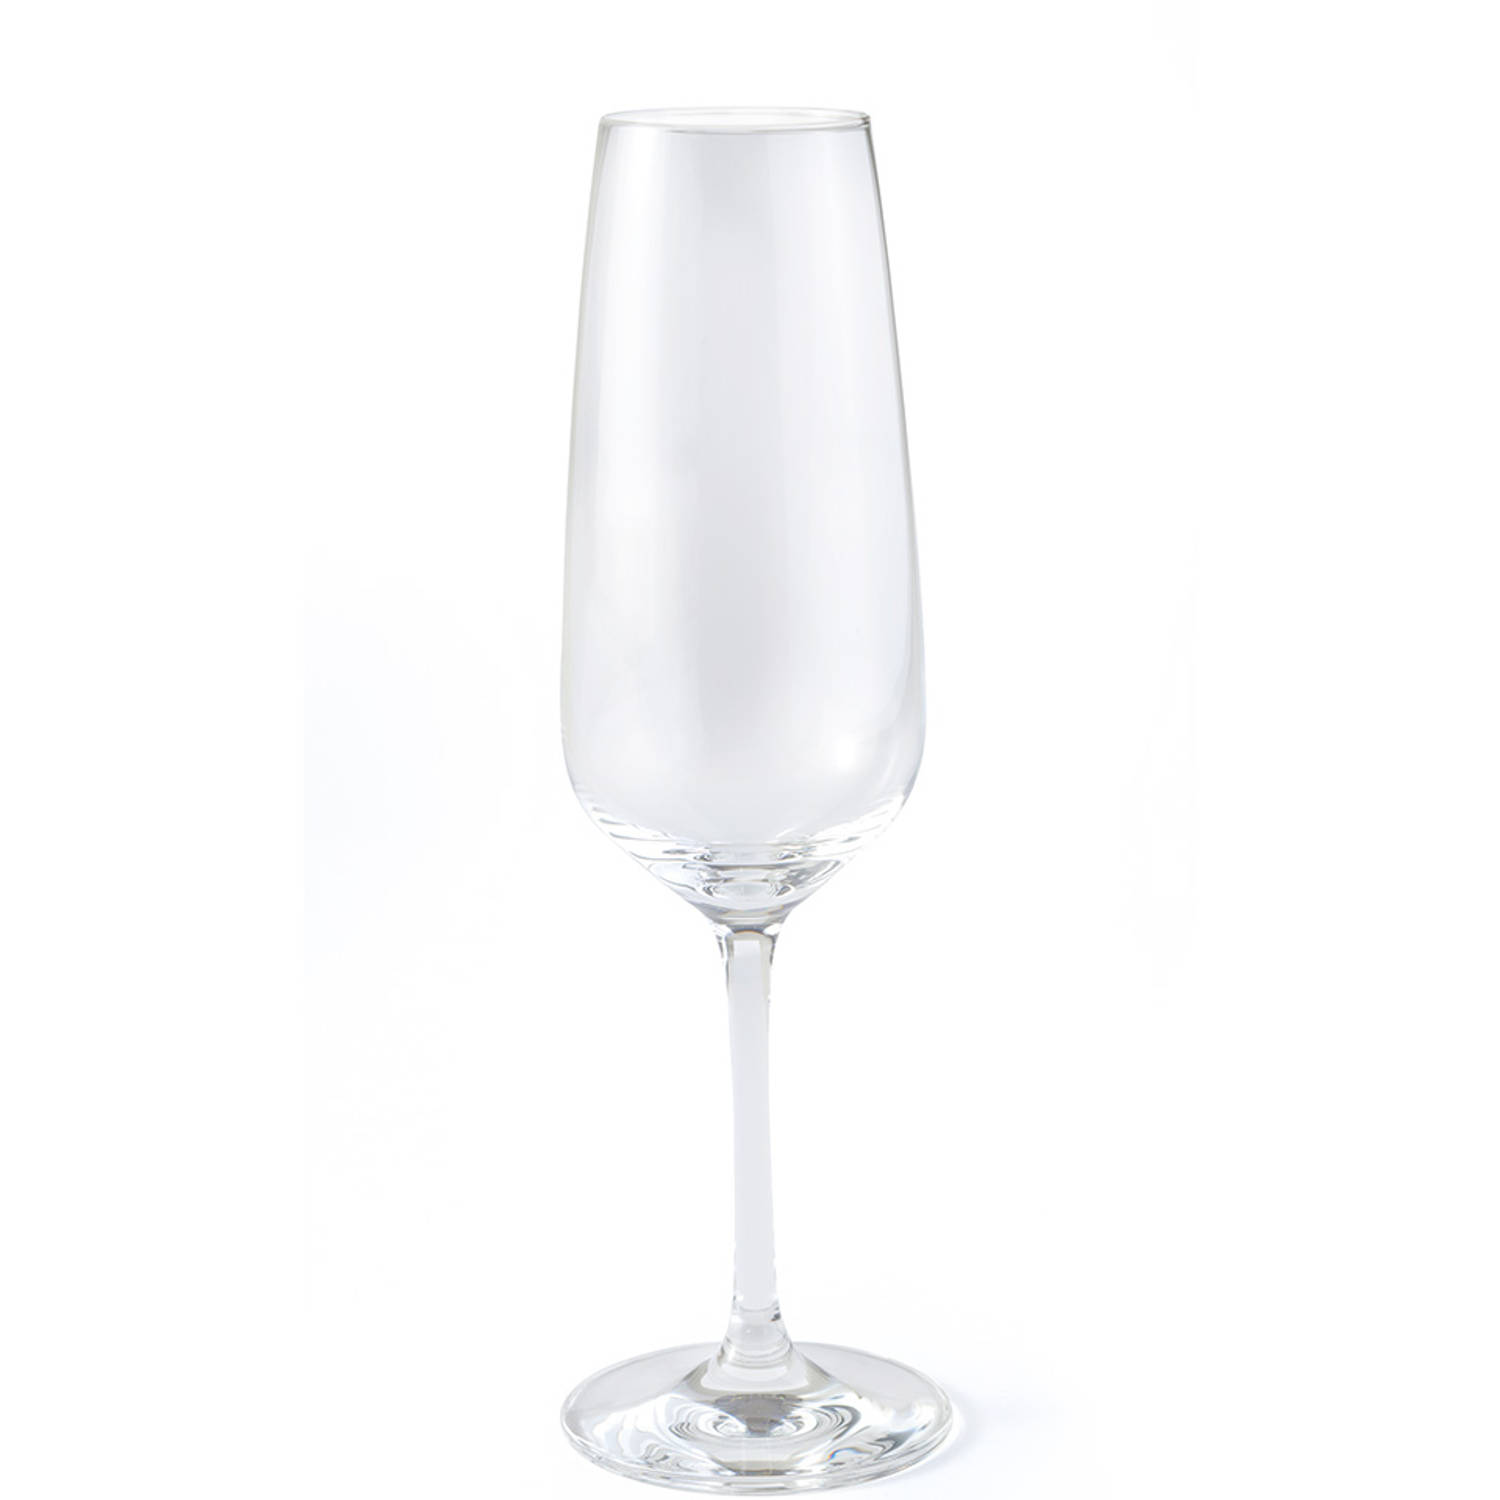 VIVO by Villeroy & Boch Group Voice Basic champagneflûte - 28 cl - 4 stuks